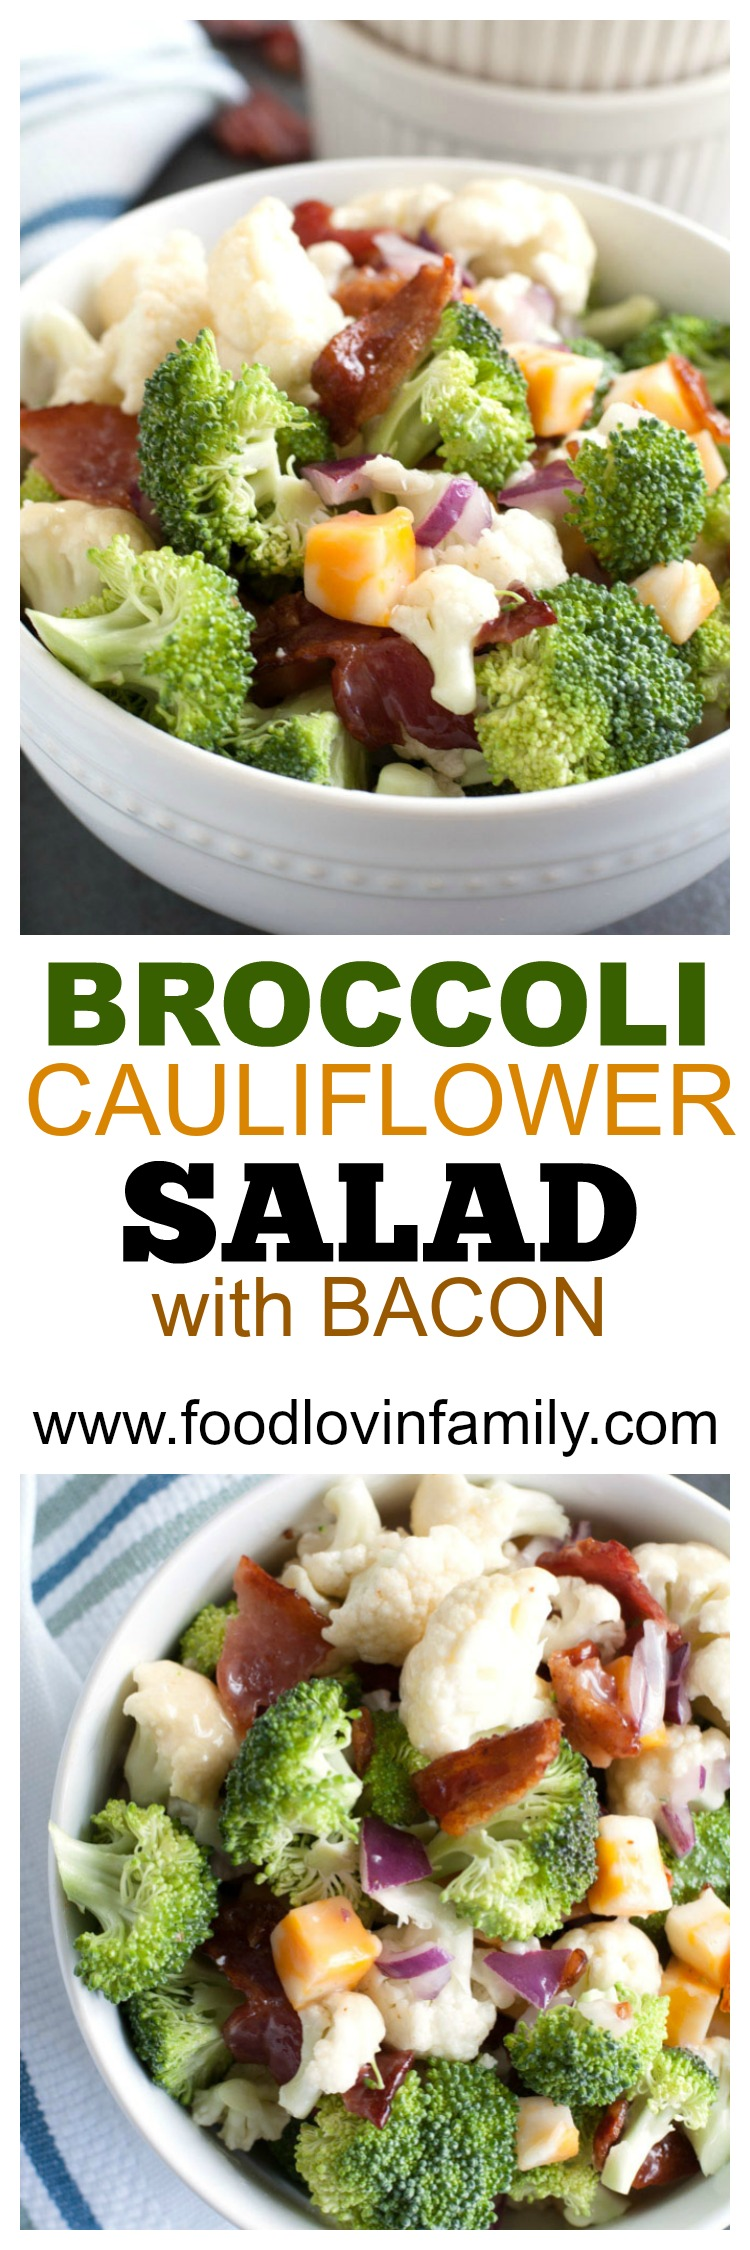 Broccoli and Cauliflower Salad with Bacon PIN